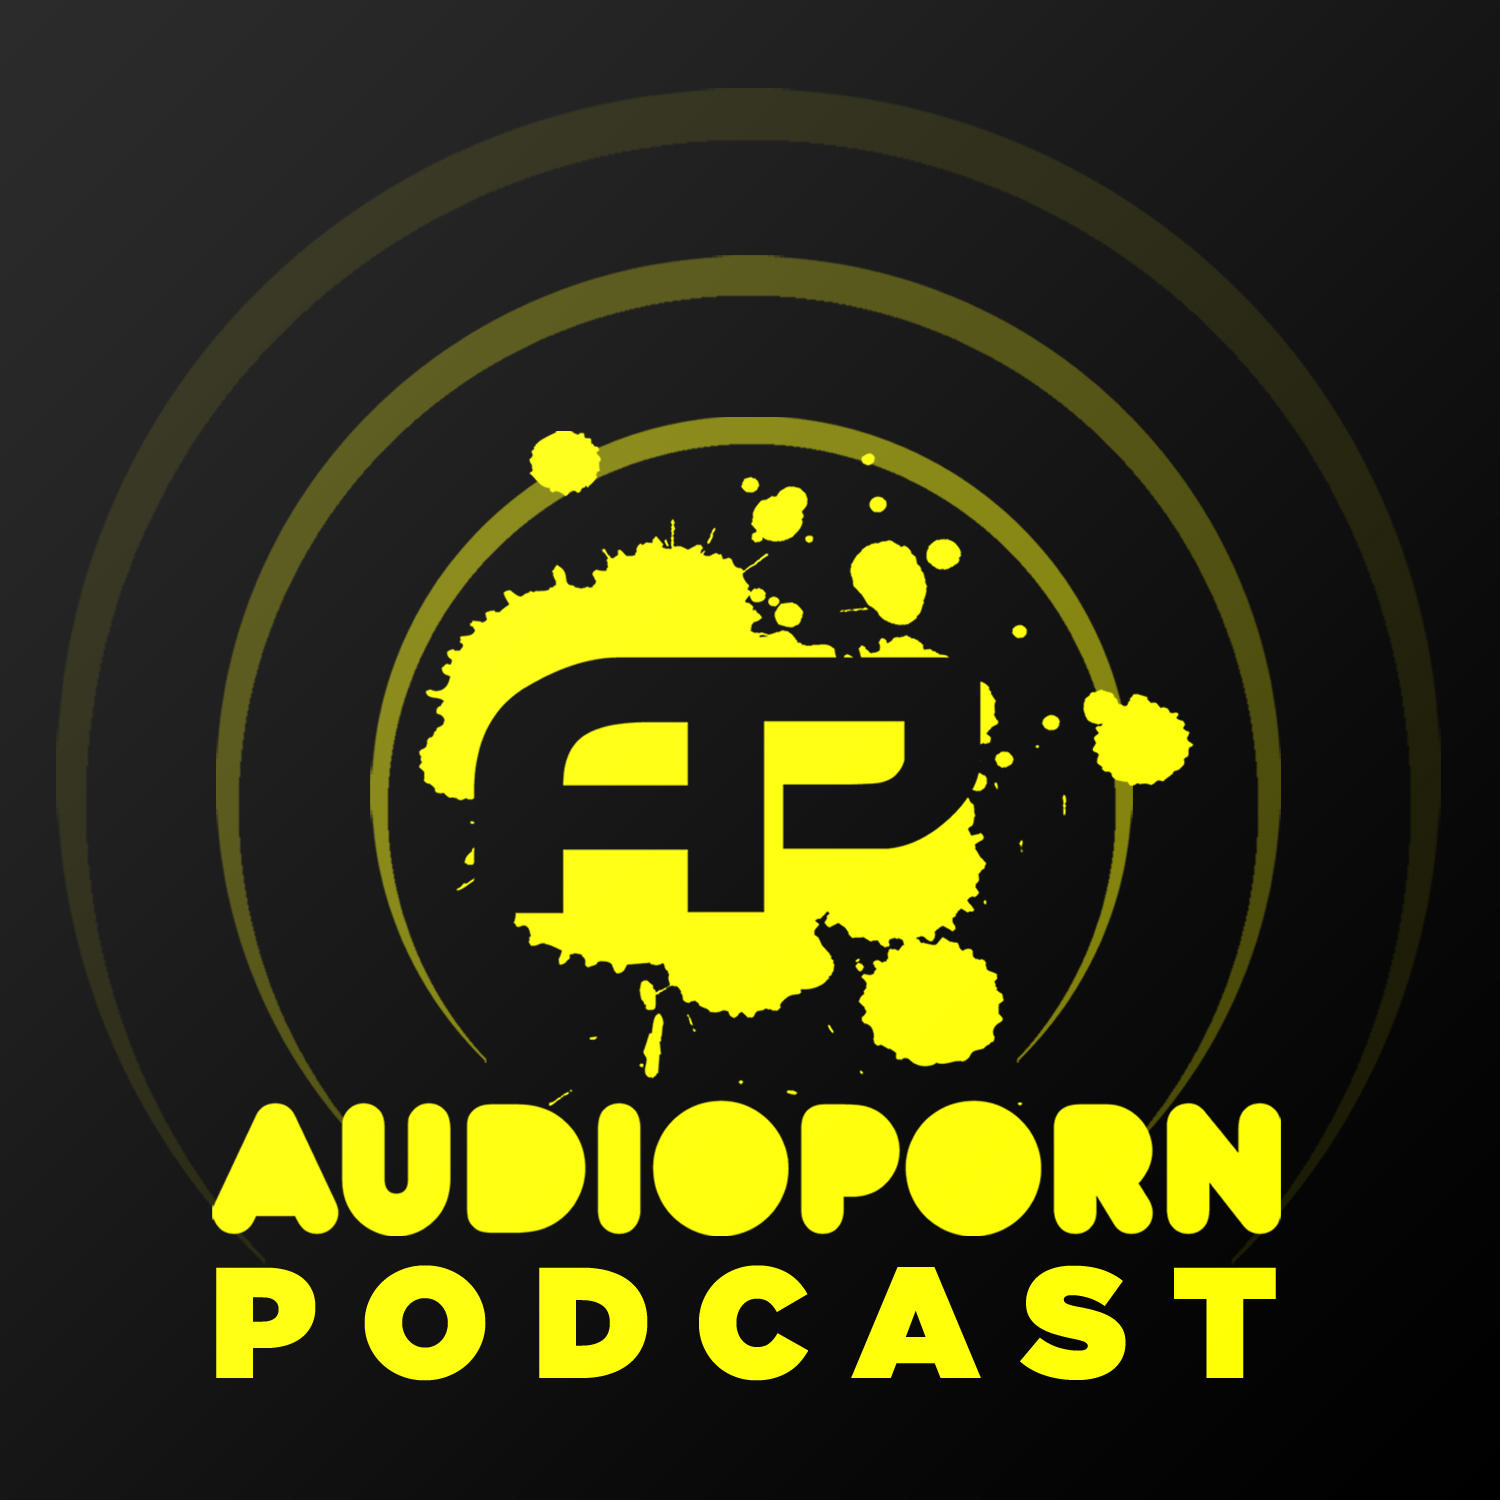 Audio Porn Podcast